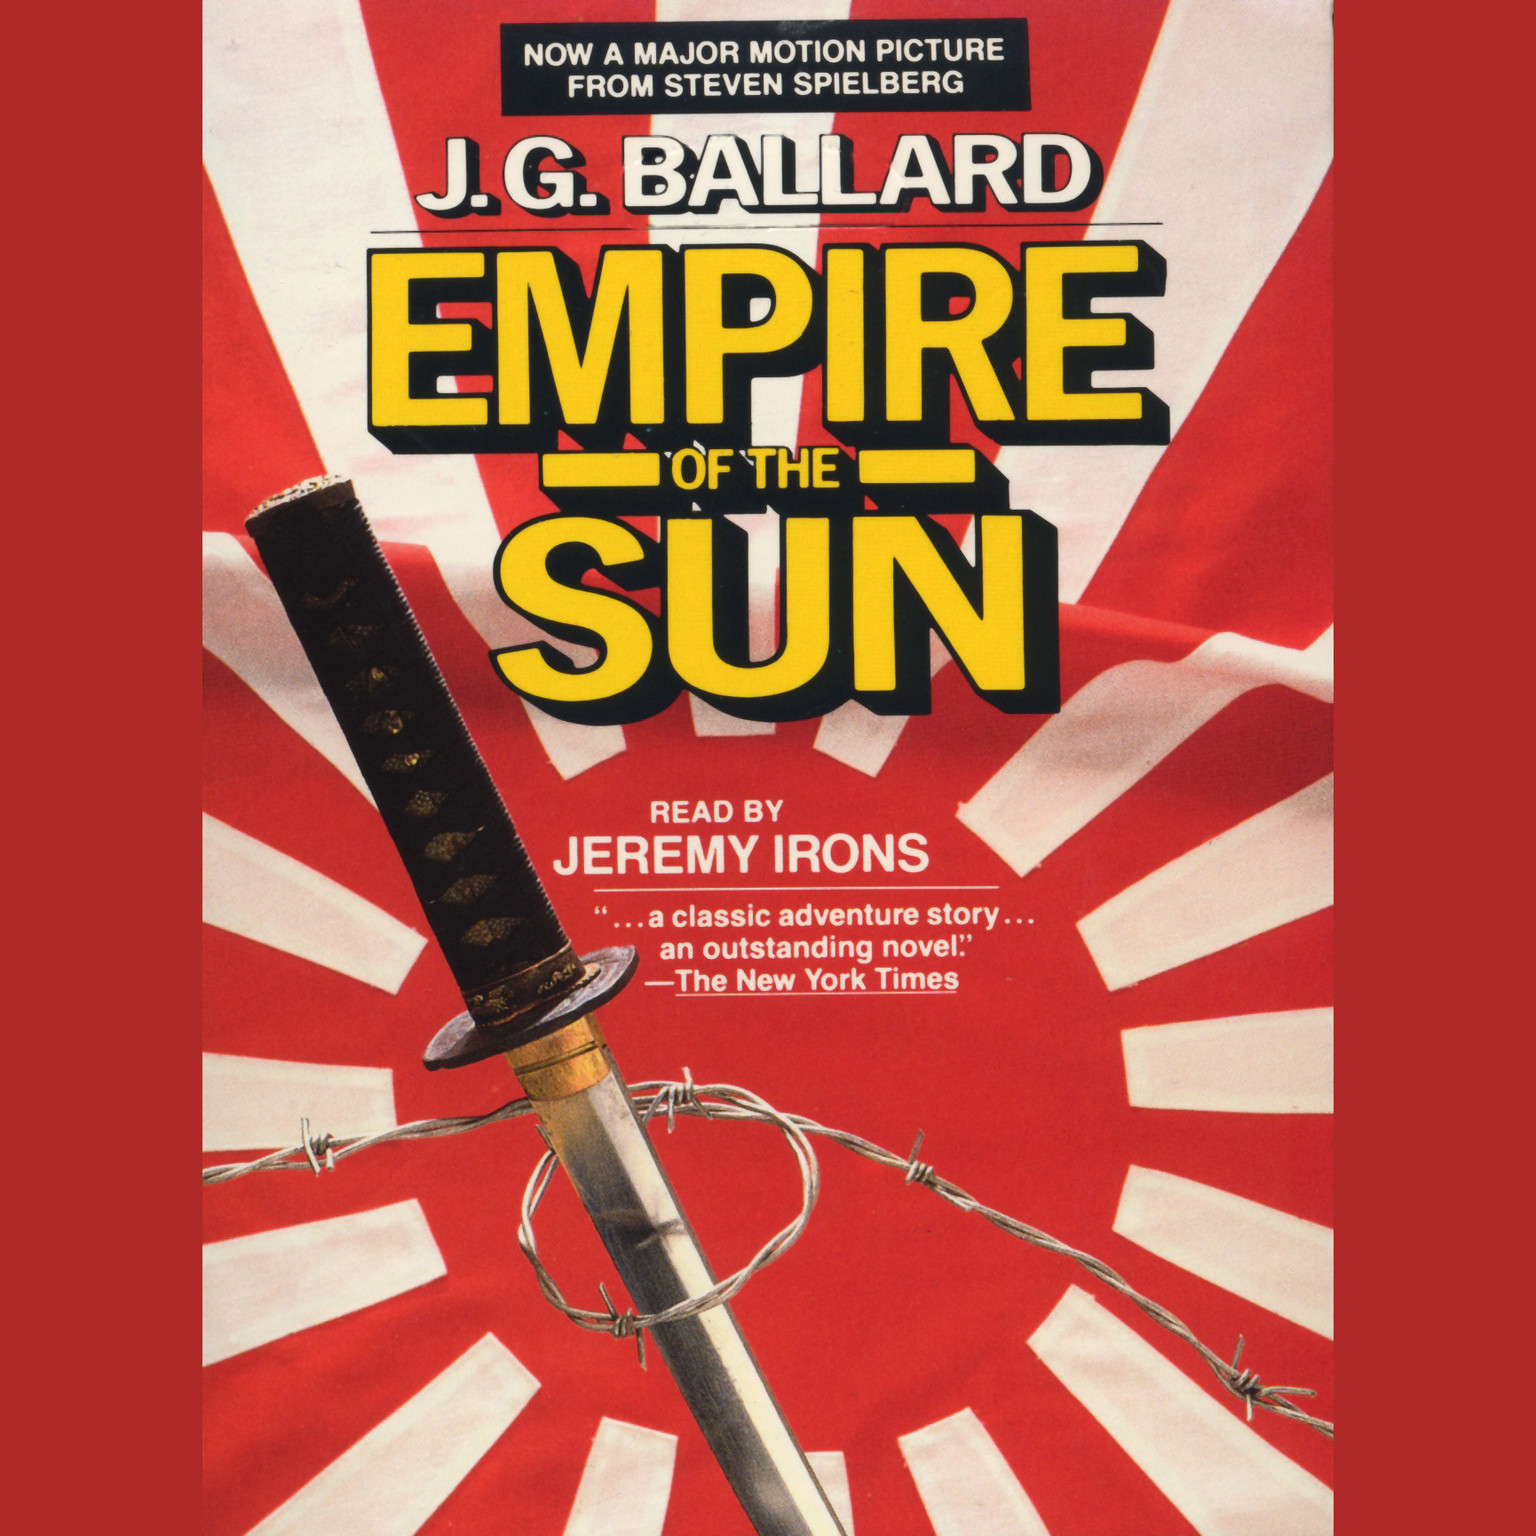 download empire of the sun  abridged  audiobook by j  g  ballard for just  5 95